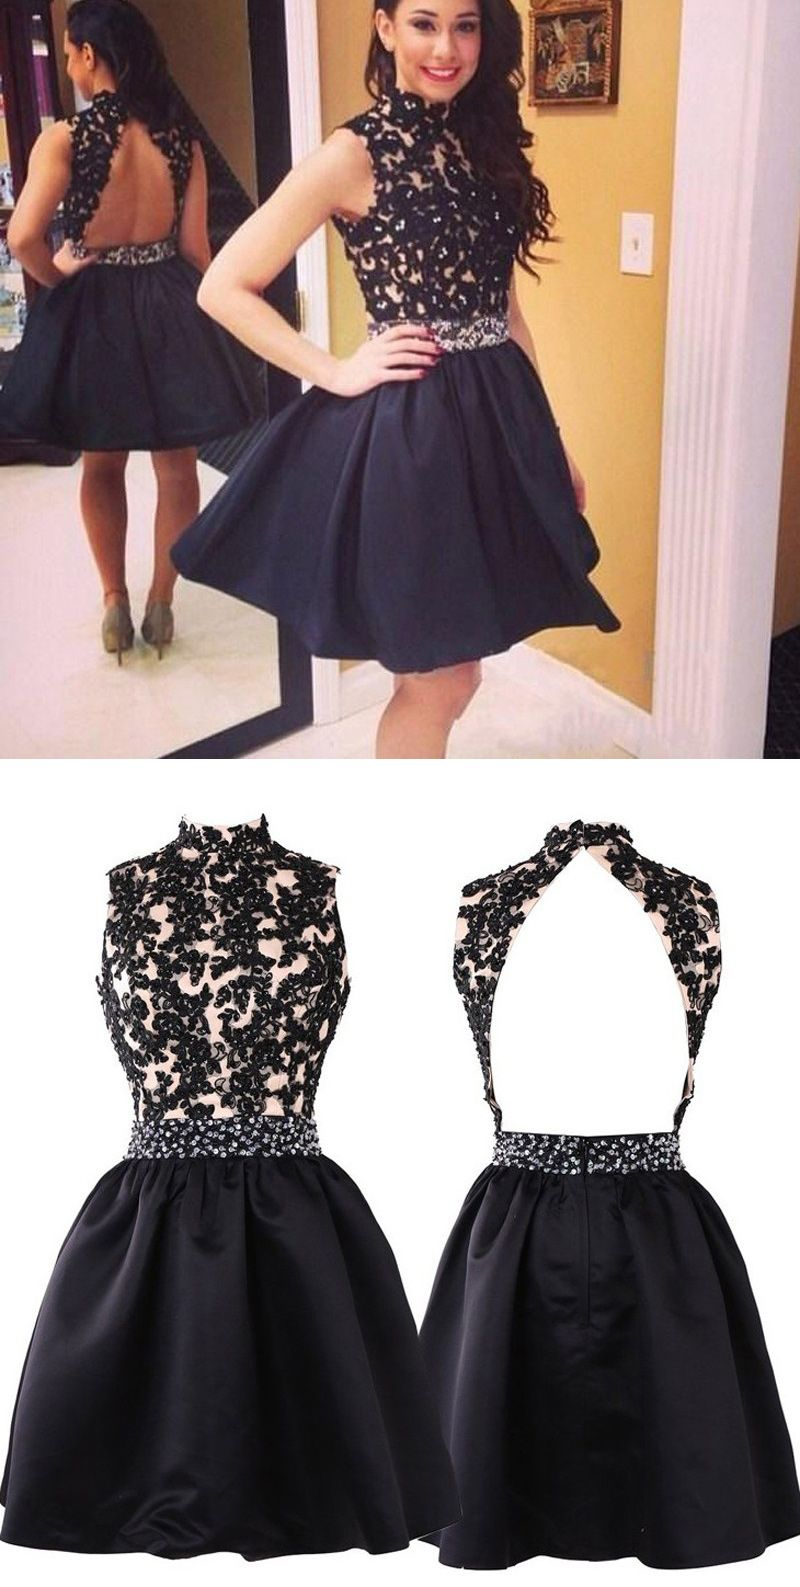 270331f0cbb A-Line High Neck Open Back Black Satin Short Homecoming Dress with ...